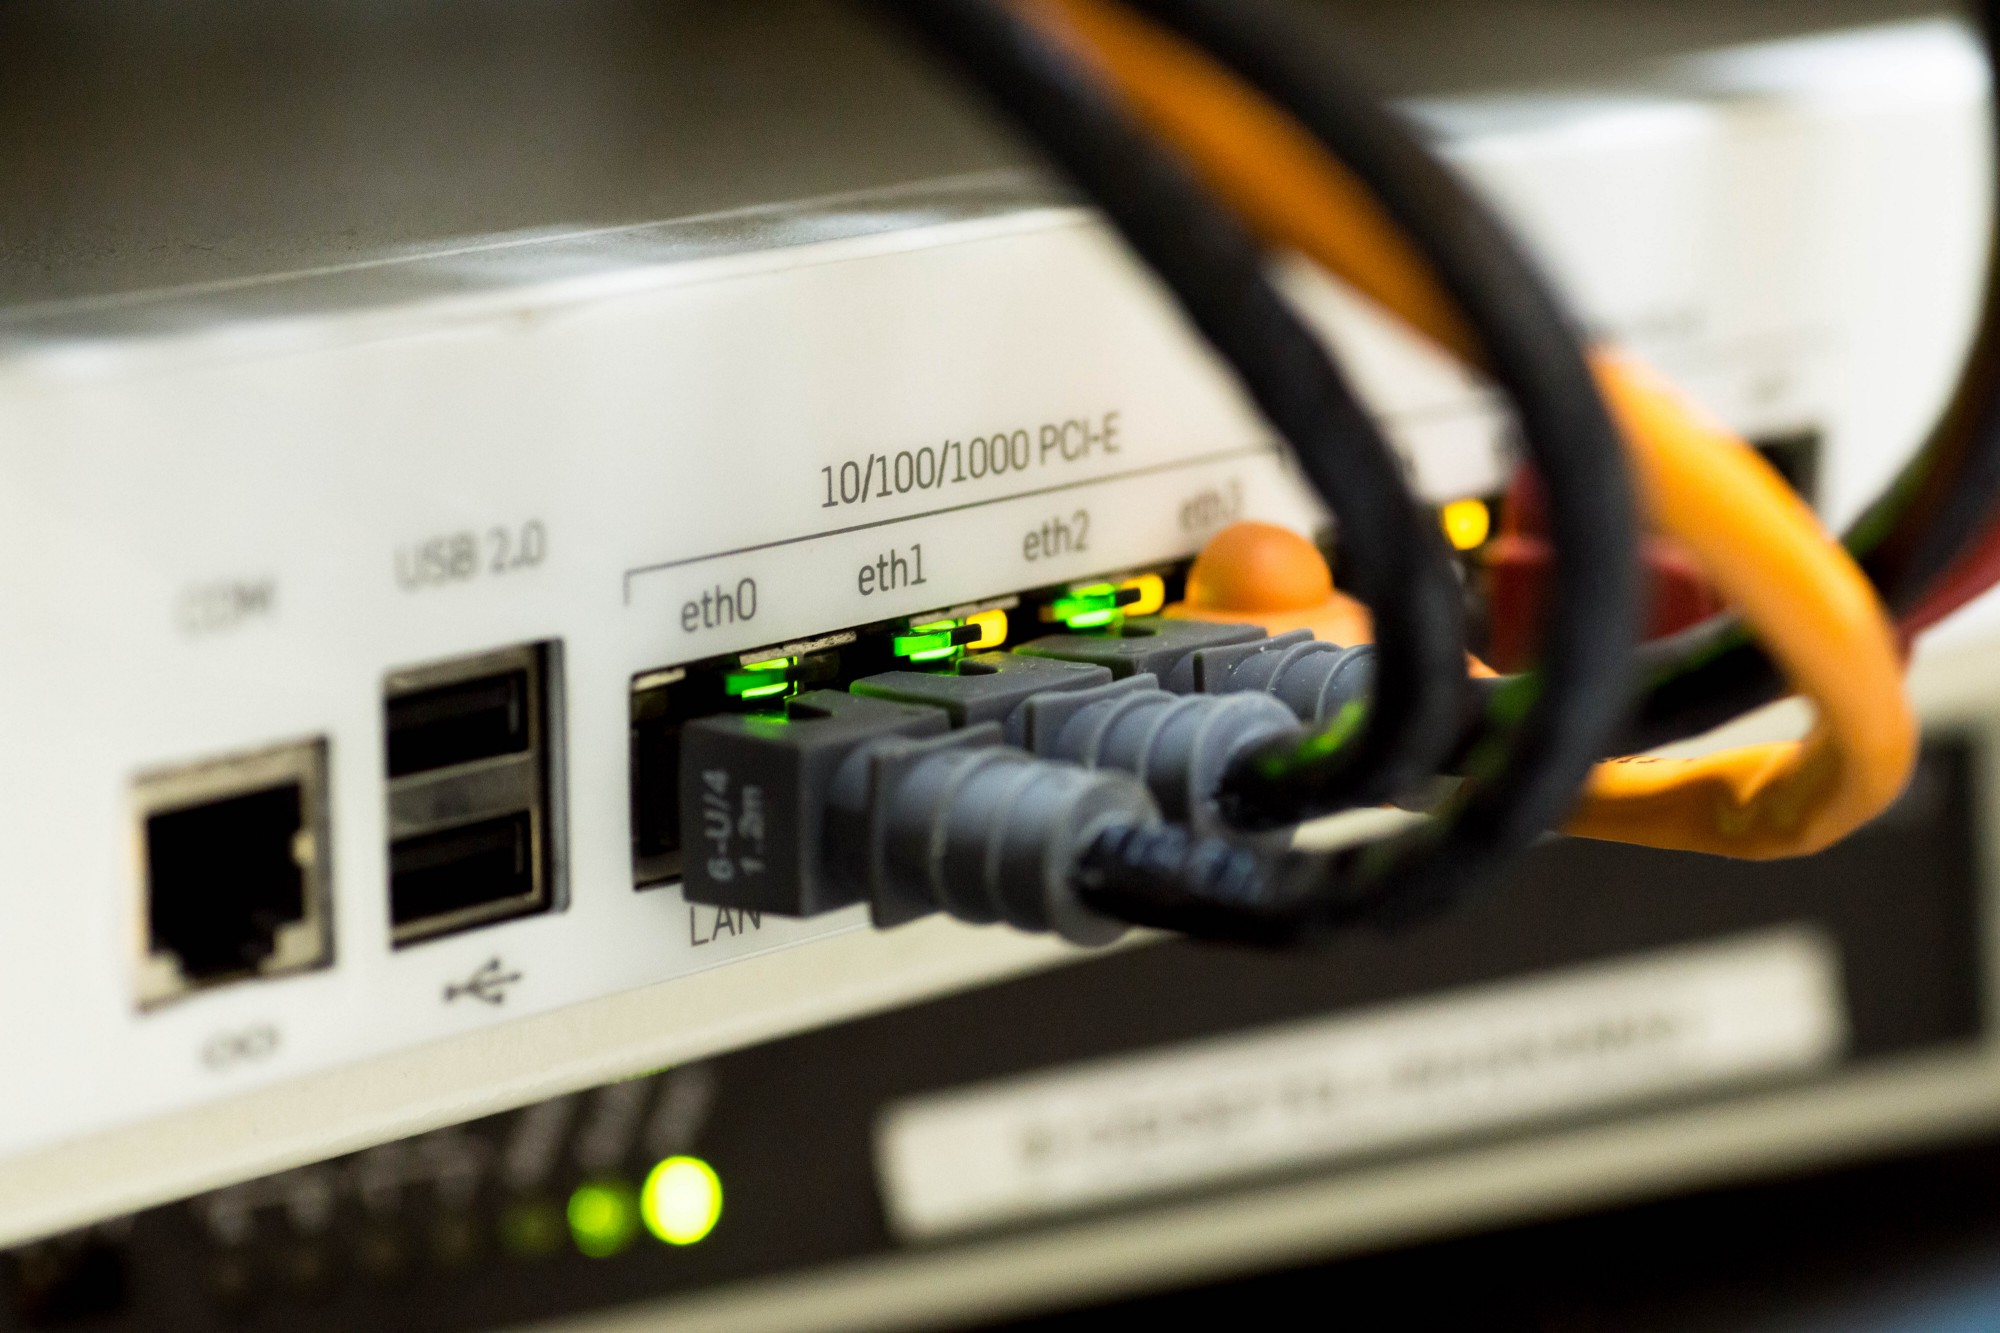 The Beginners Guide To Your Internet Speed Medium Cable For Connecting Computer A Hub Or Switch Straight Through So I Heard Has Been Slowing Down Its Not Coincidence With Rise Of Media Heavy Websites And Content It Takes Much Longer Load